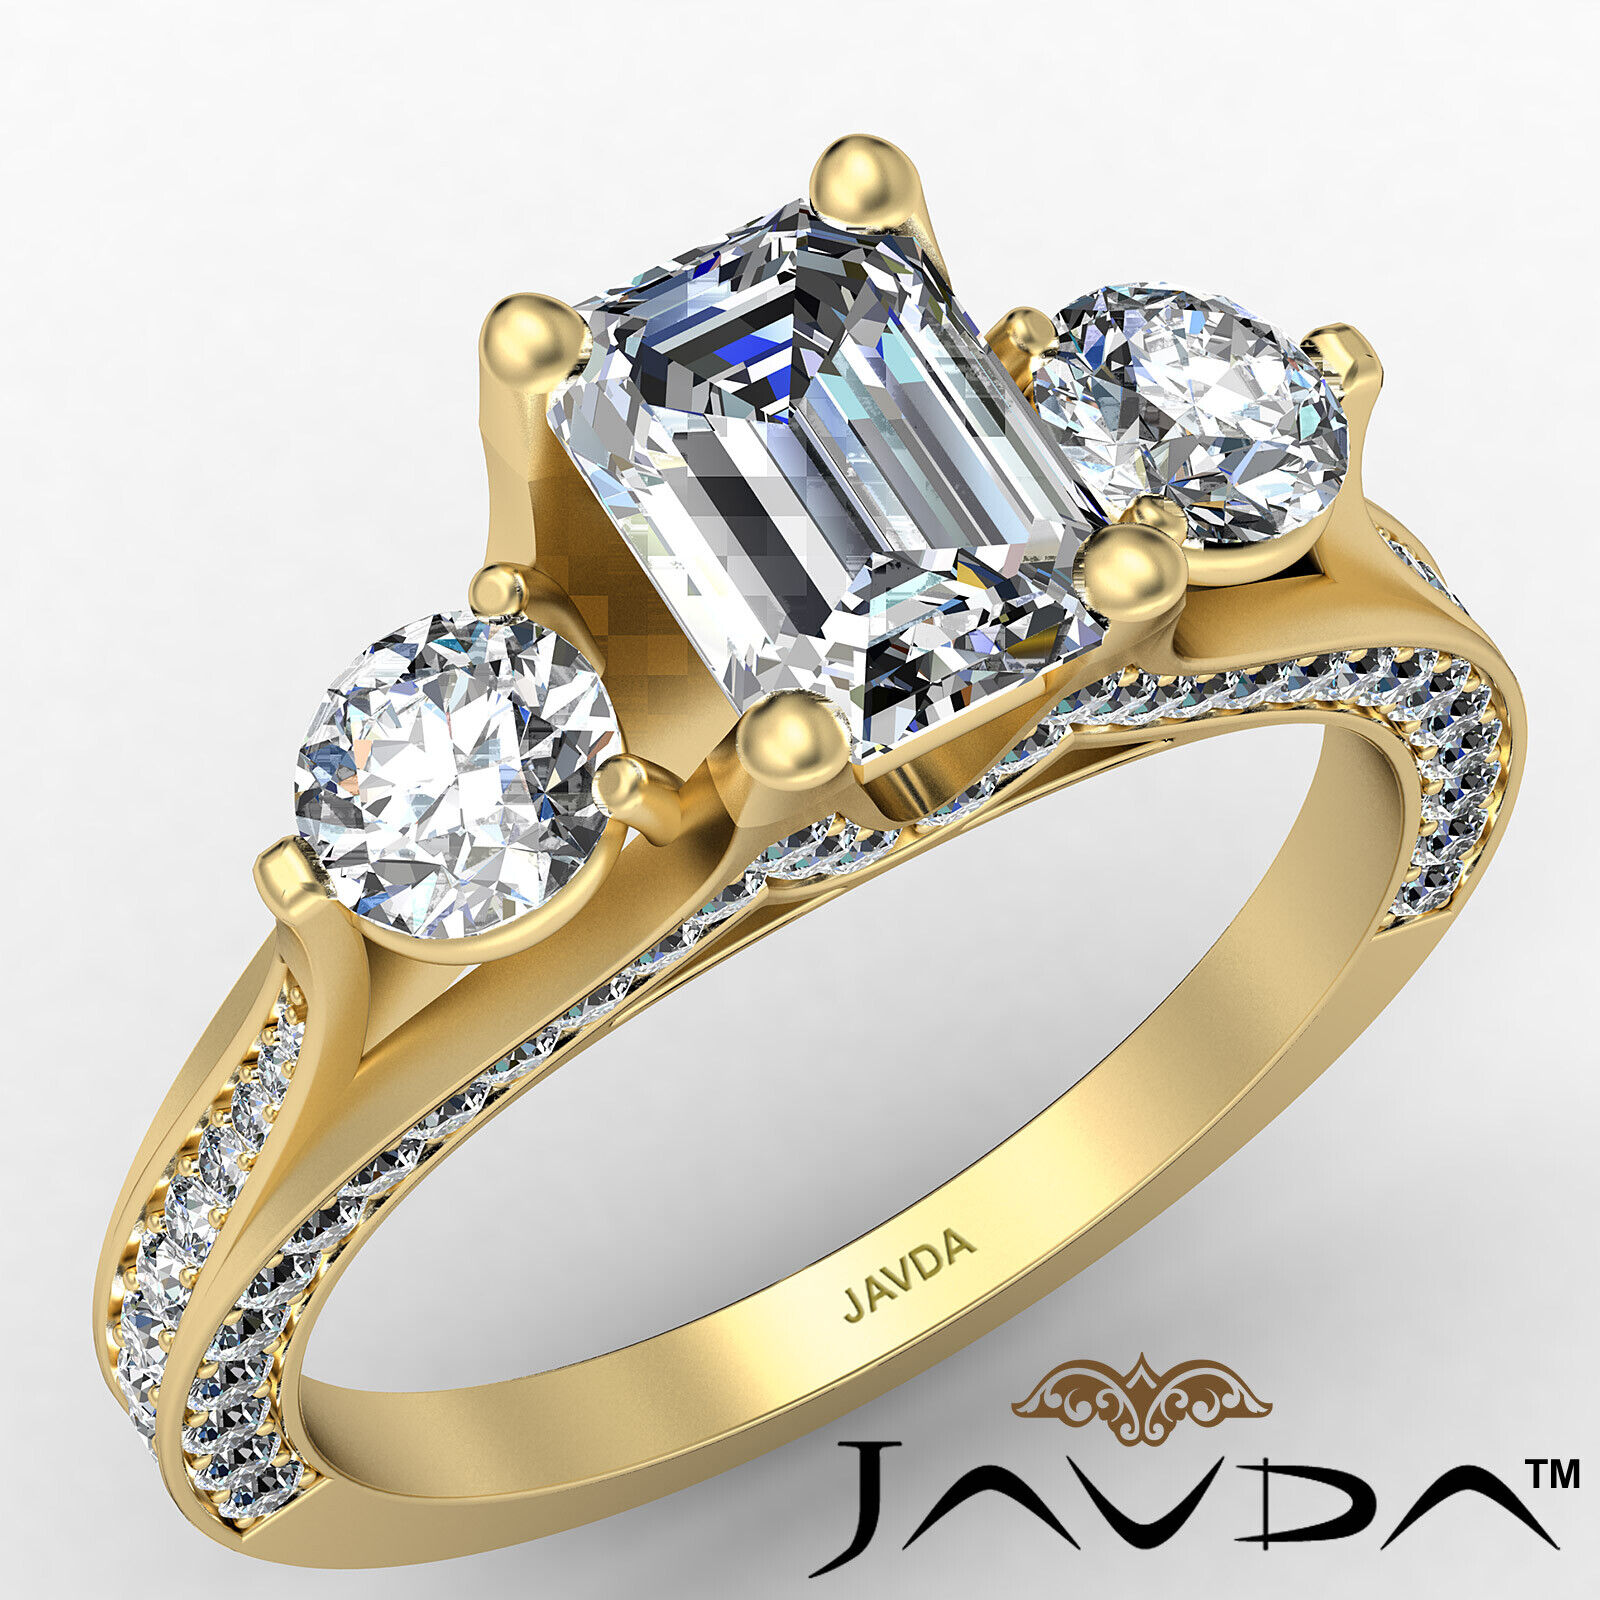 3stone Emerald Diamond Engagement Ring GIA Certified J Color & VVS1 clarity 2ctw 1